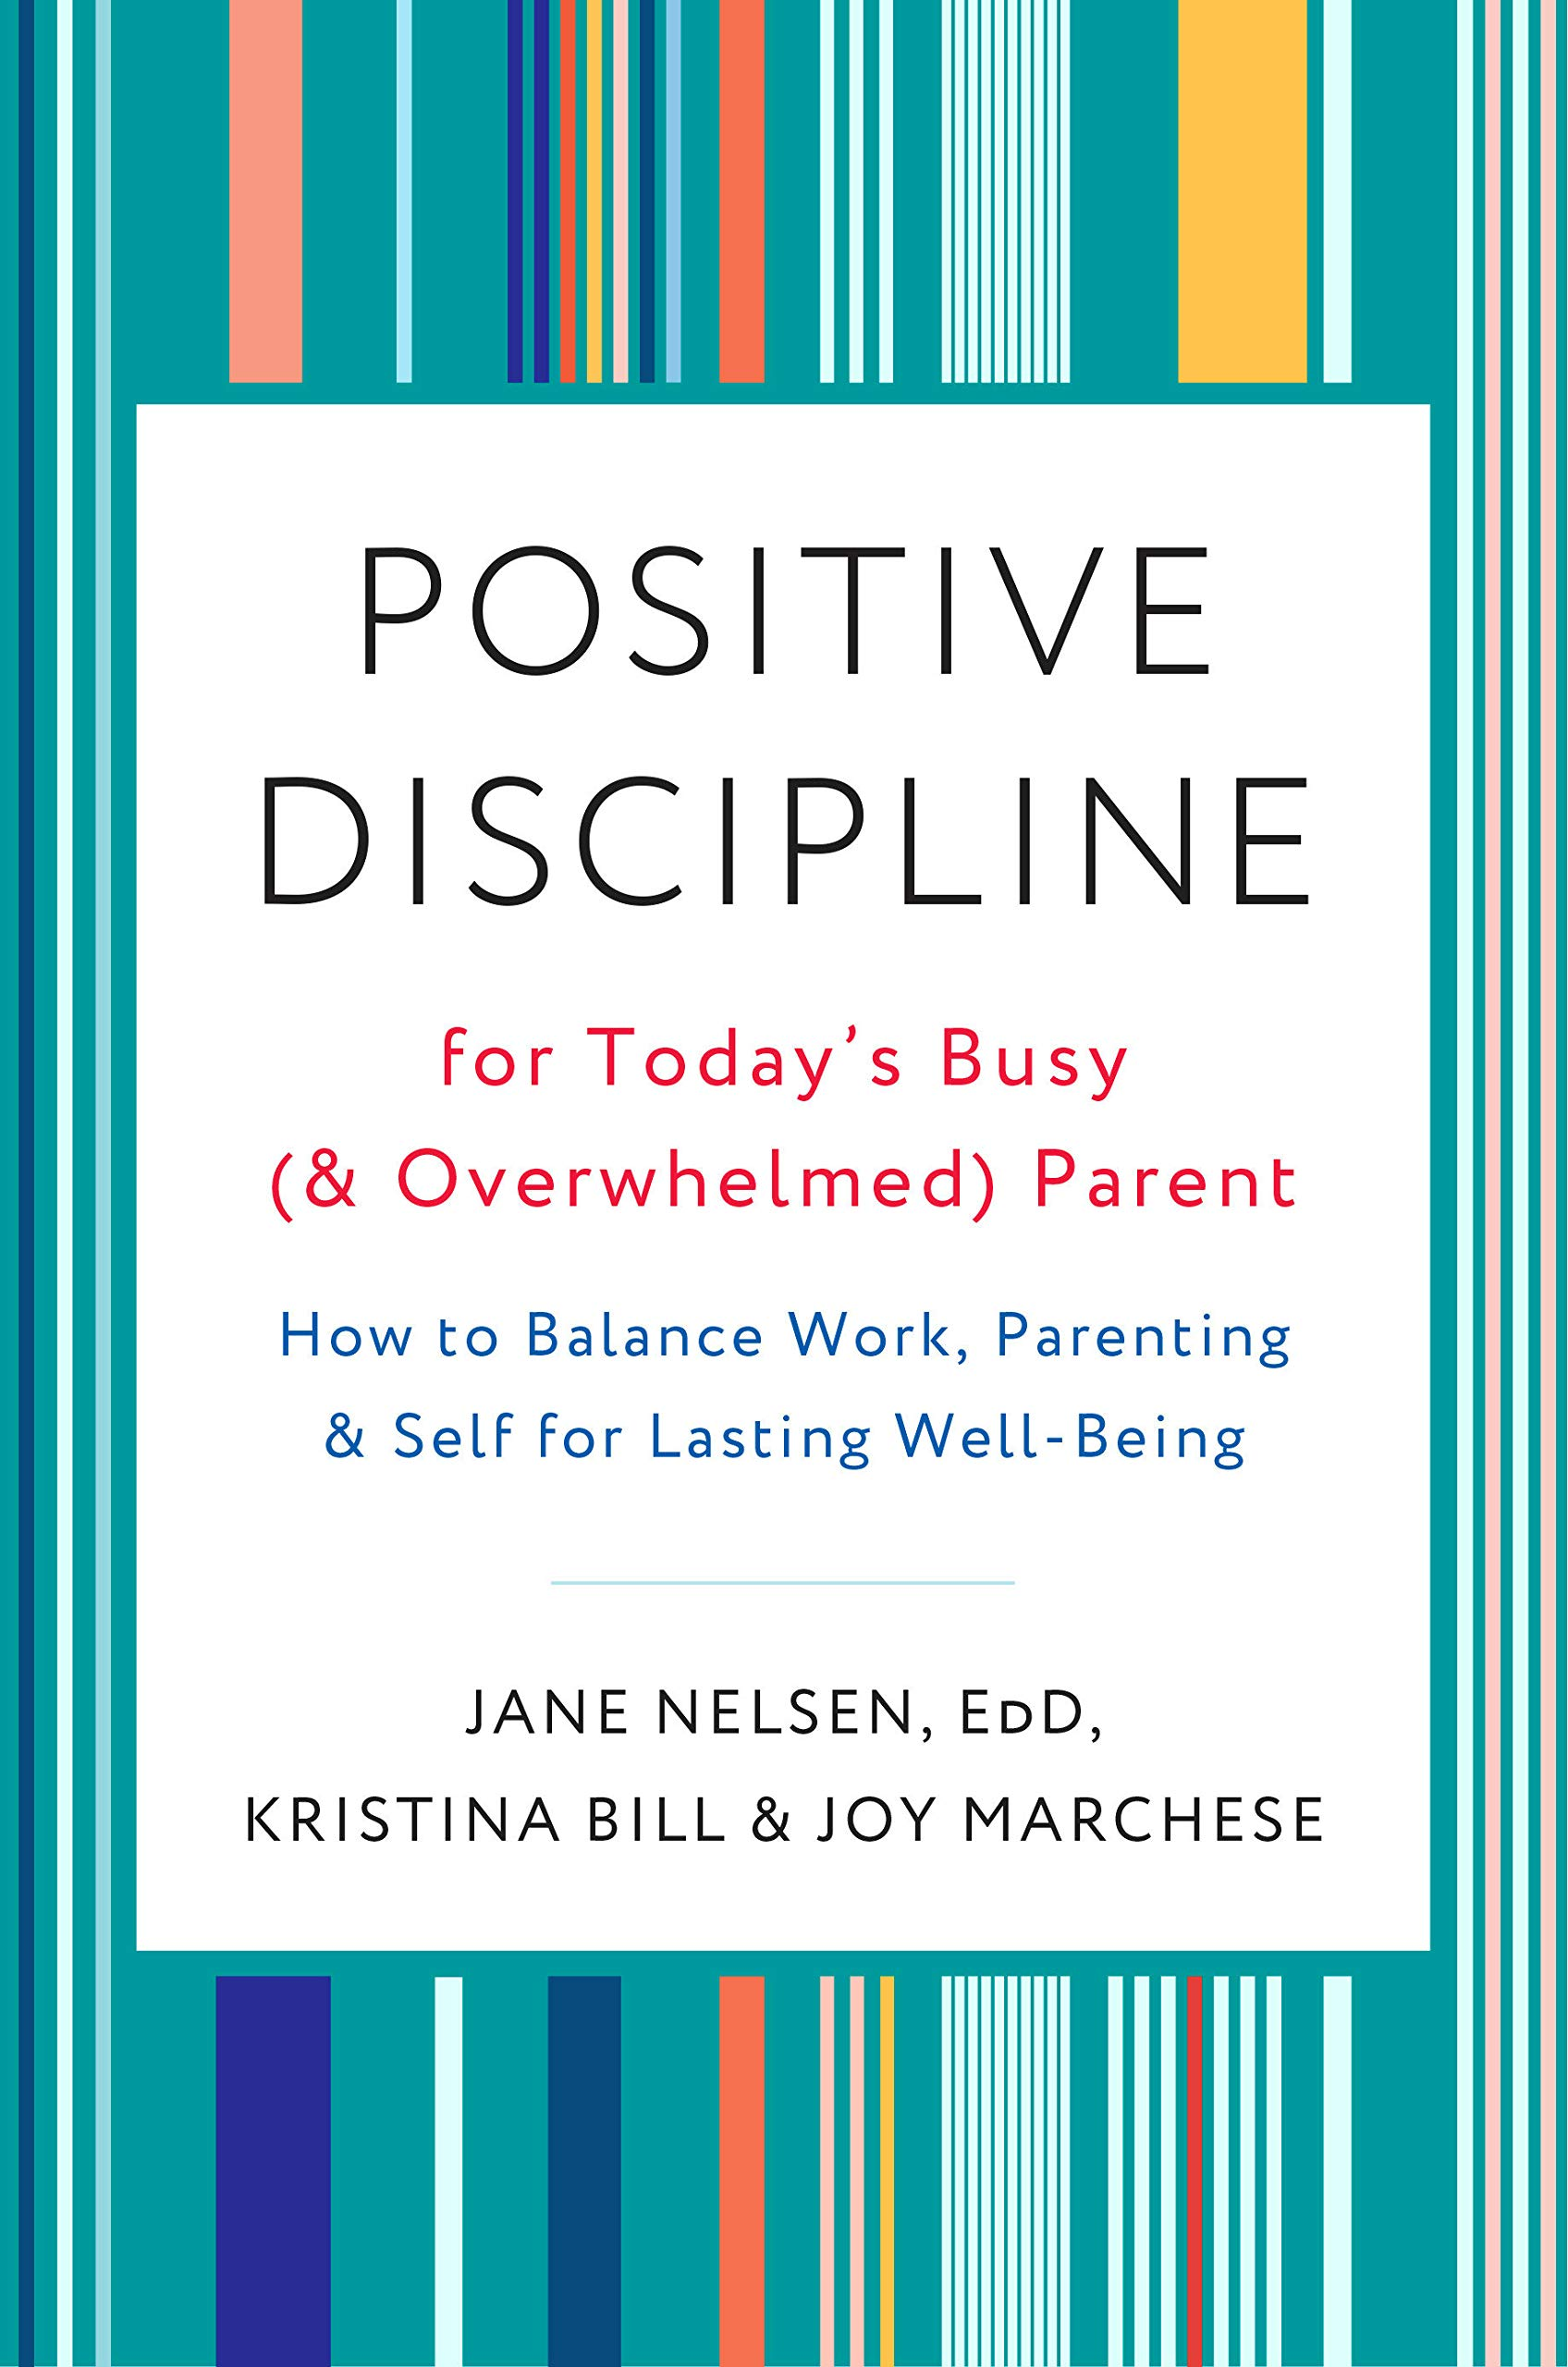 How to Balance Work and Parenting forecast